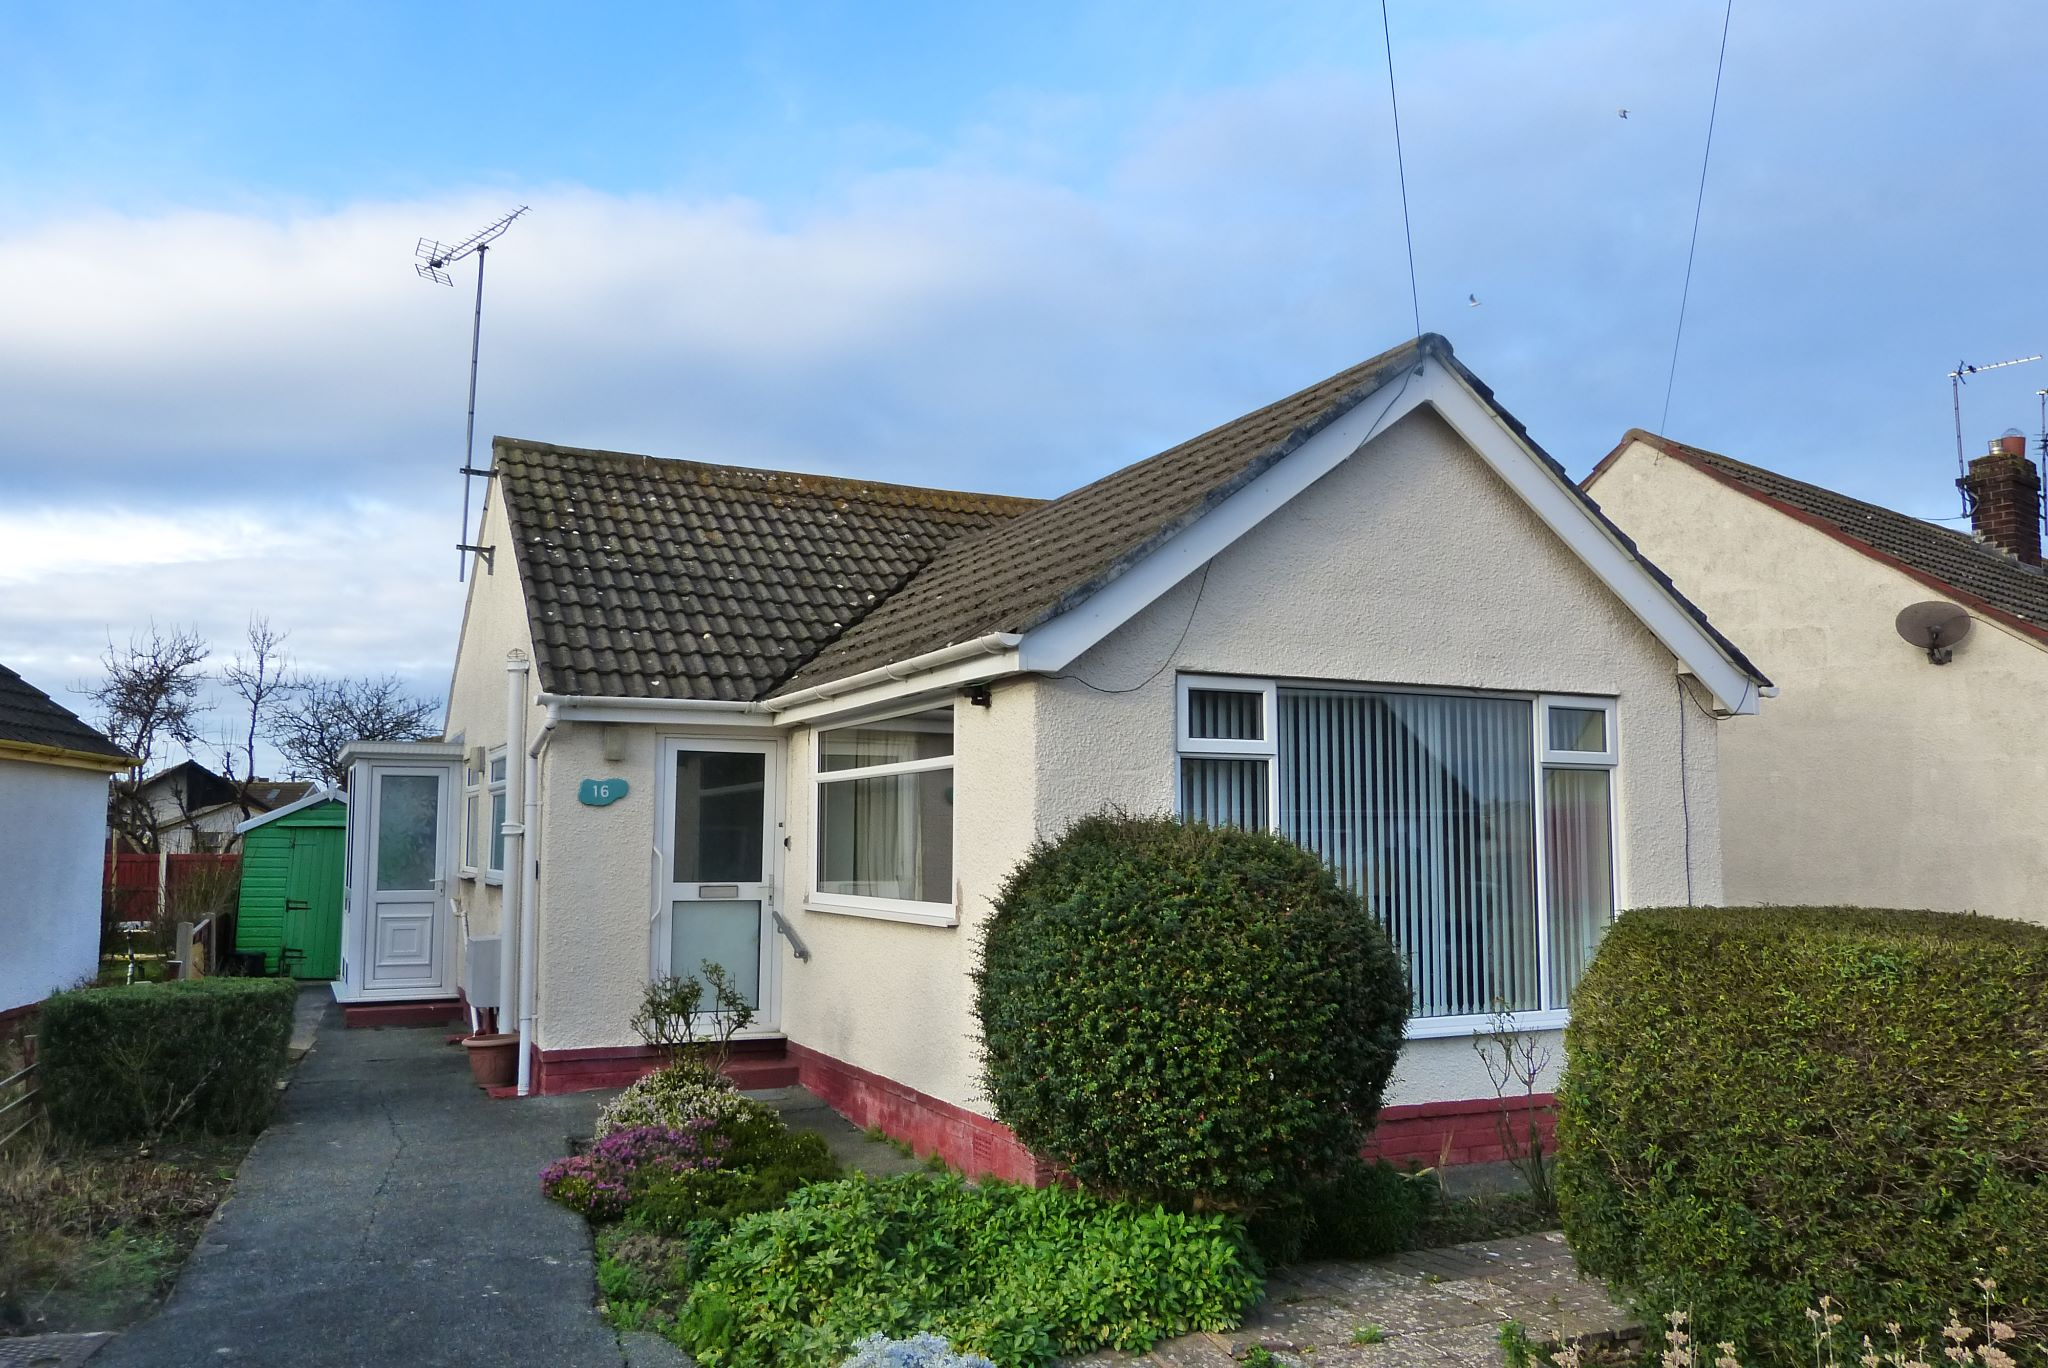 2 bedroom detached bungalow SSTC in Pensarn - Photograph 1